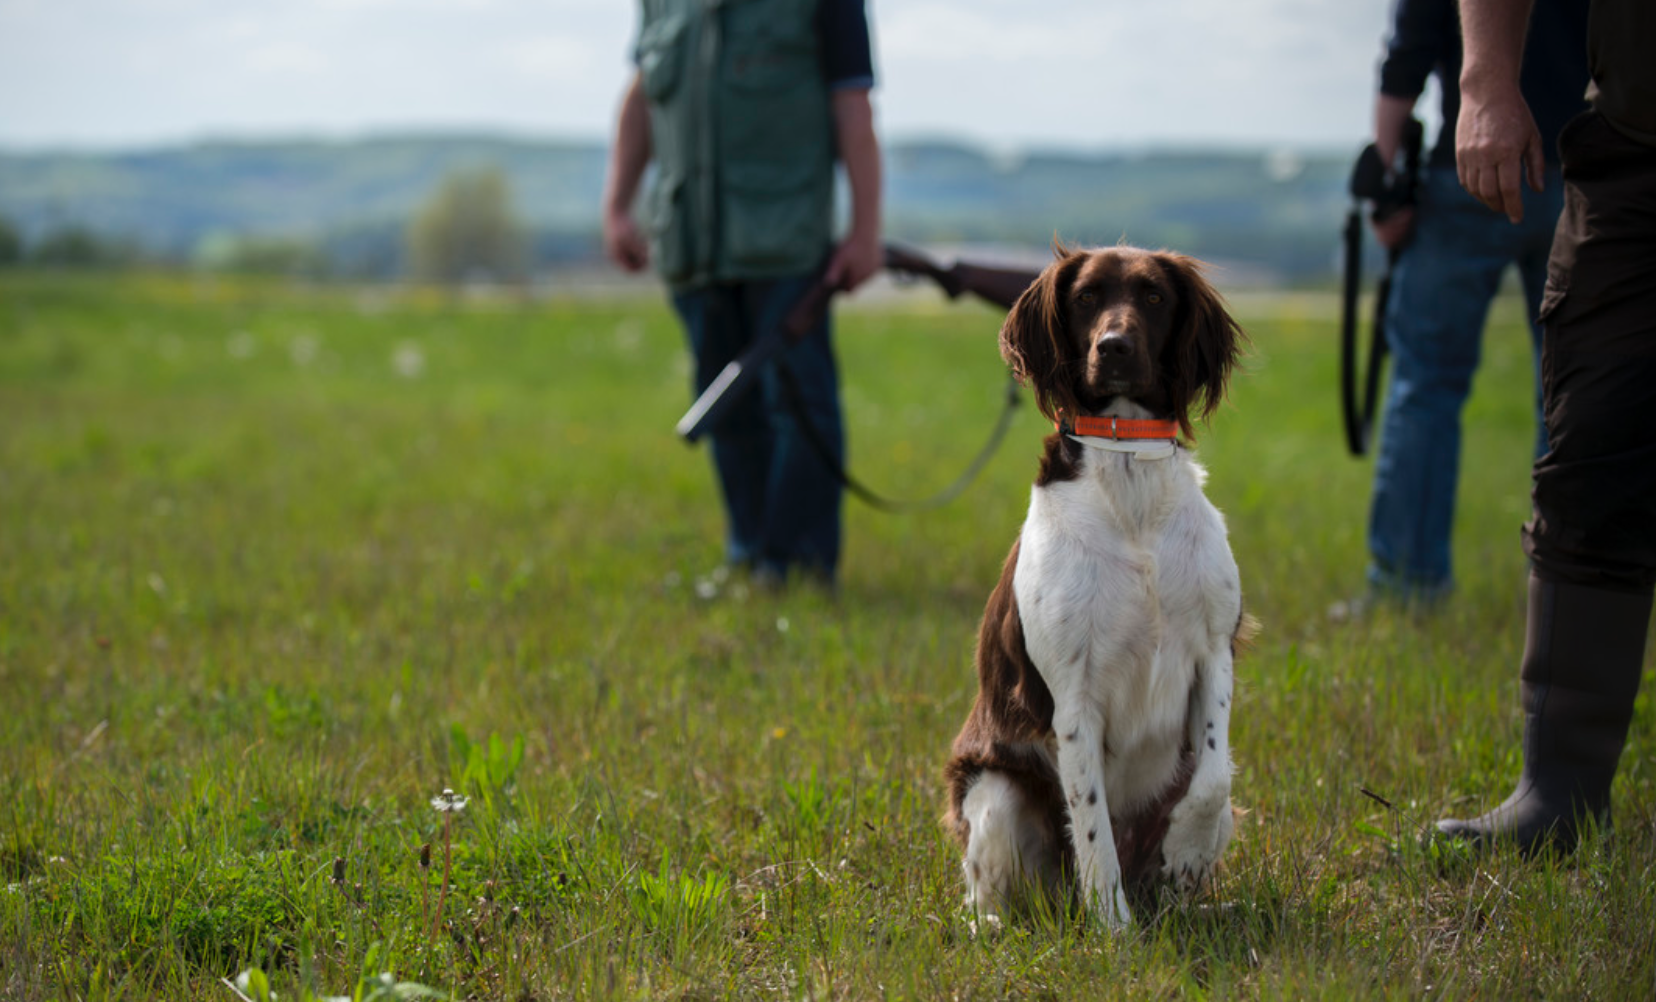 East coast unveils new laws aiming to outlaw hunting dogs, shooting ranges